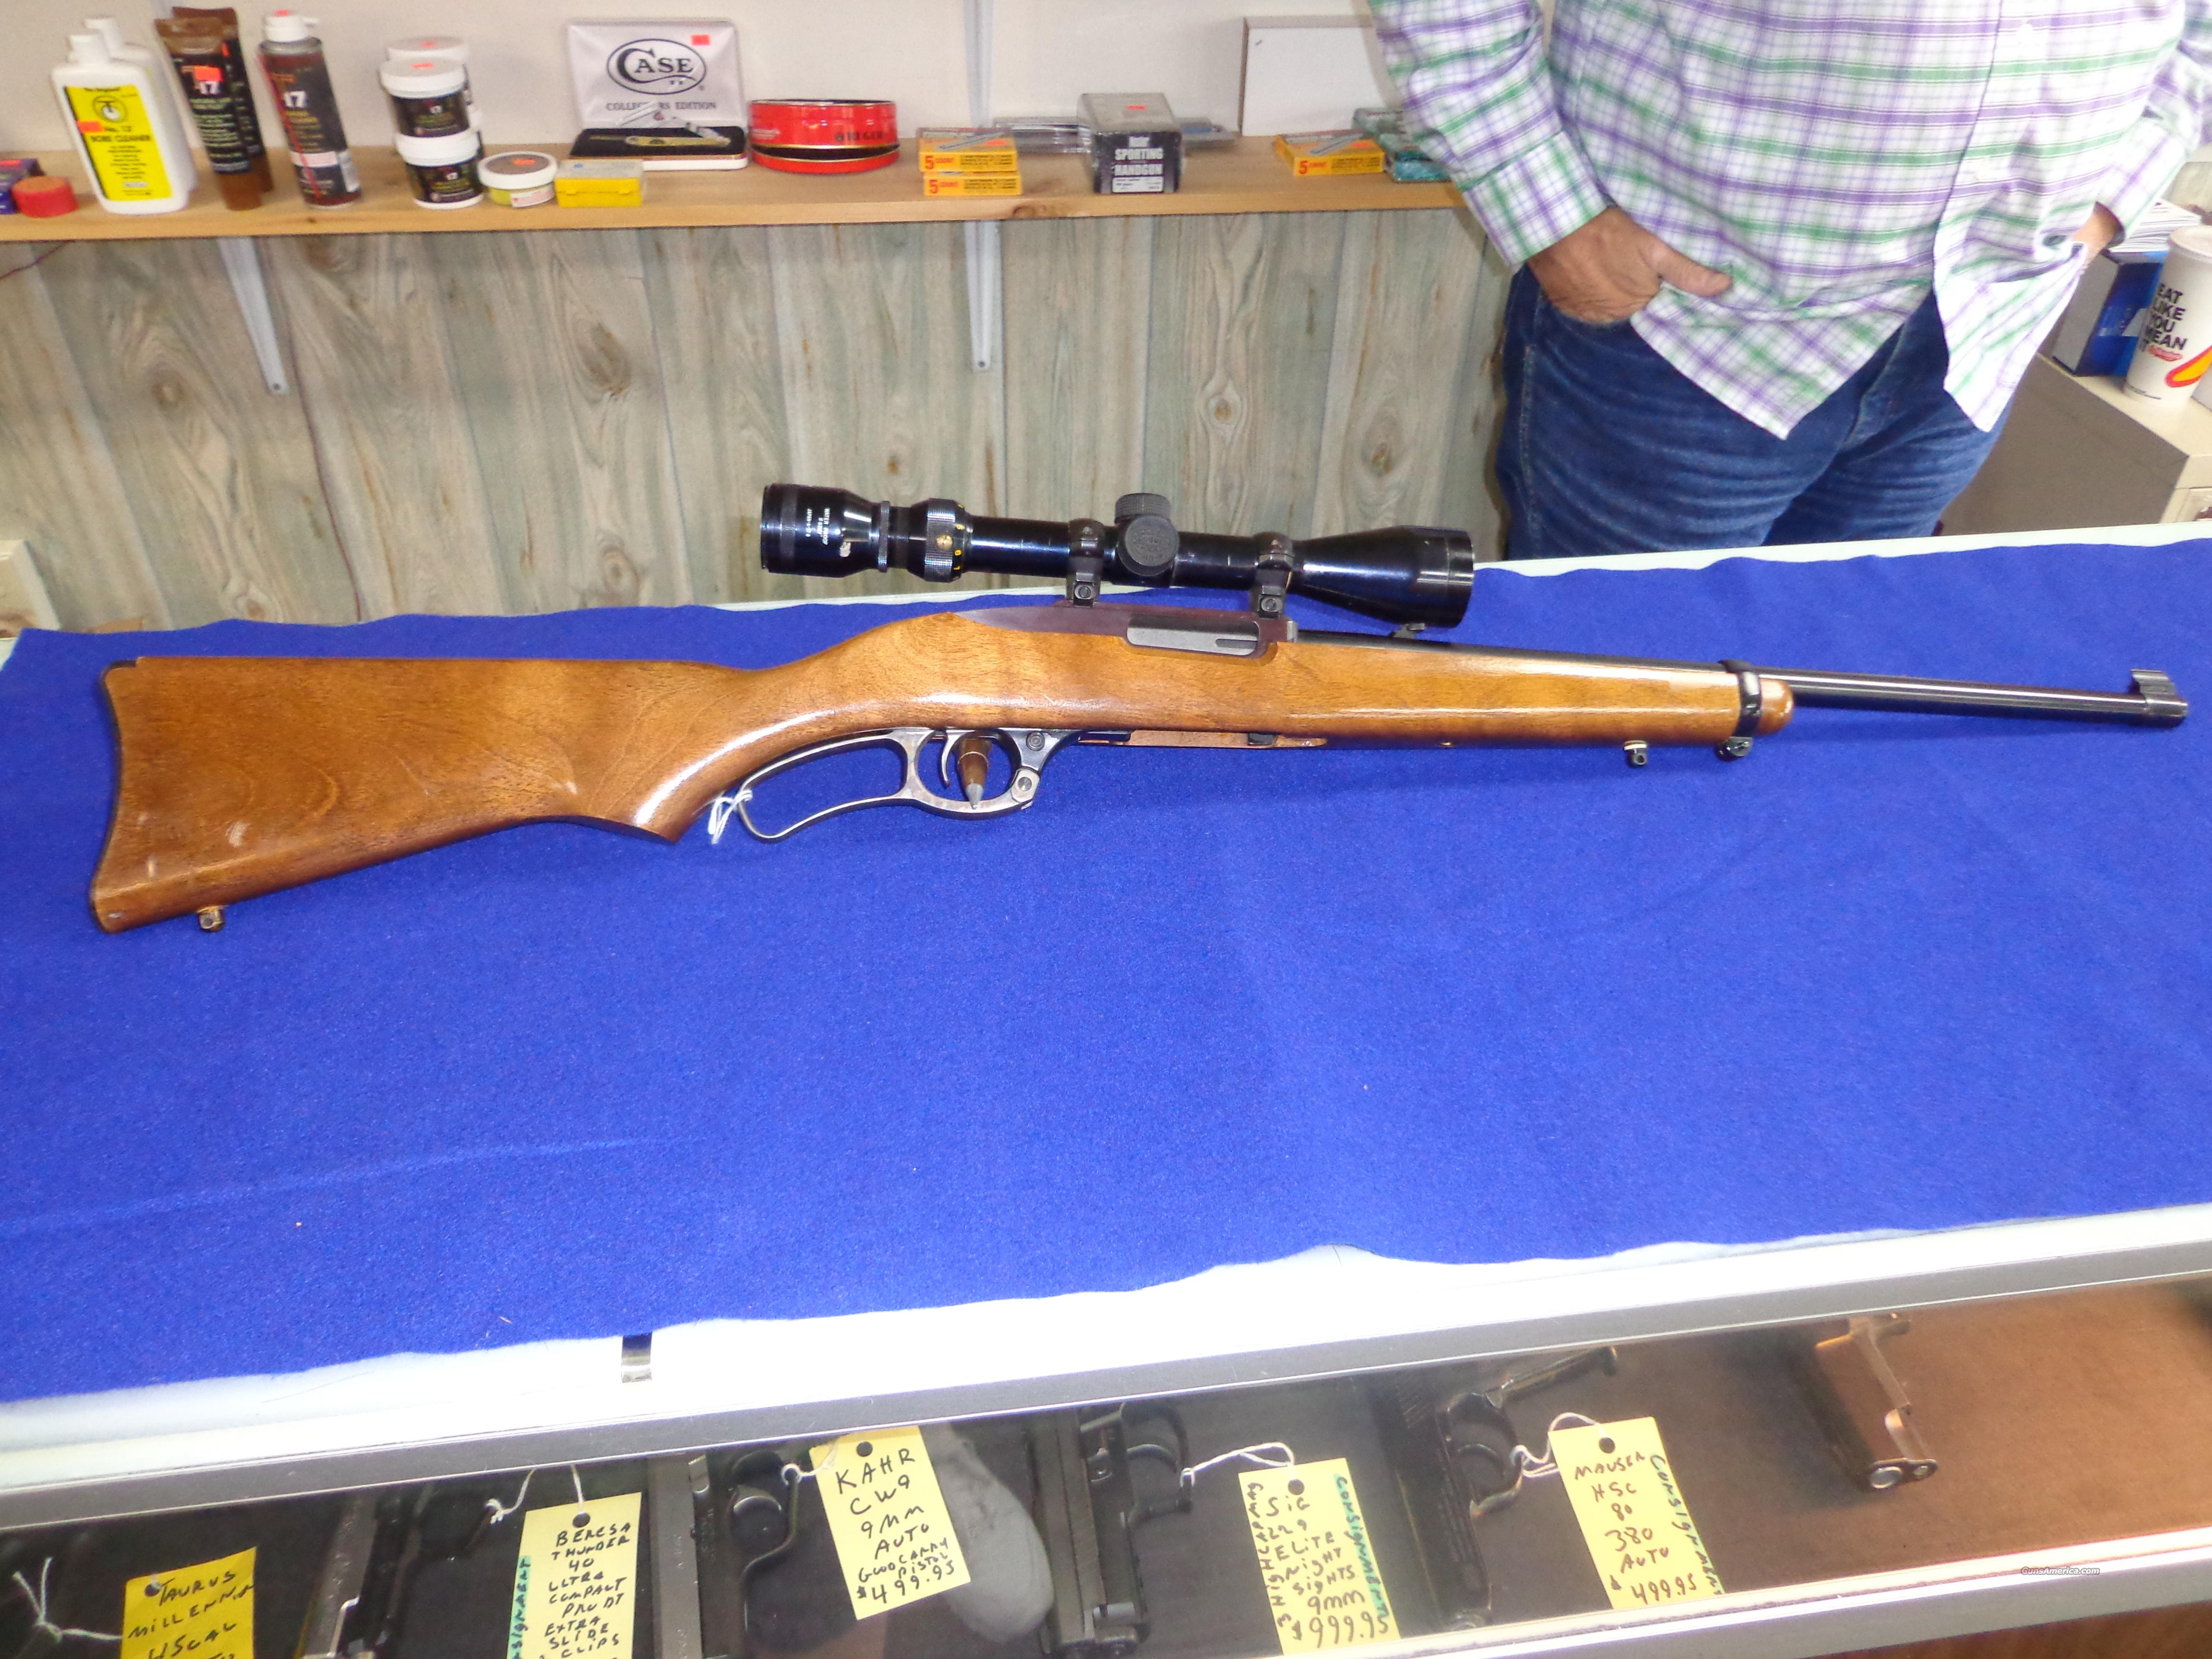 RUGER MODEL 96 44 MAG LEVER  Guns > Rifles > Ruger Rifles > Lever Action